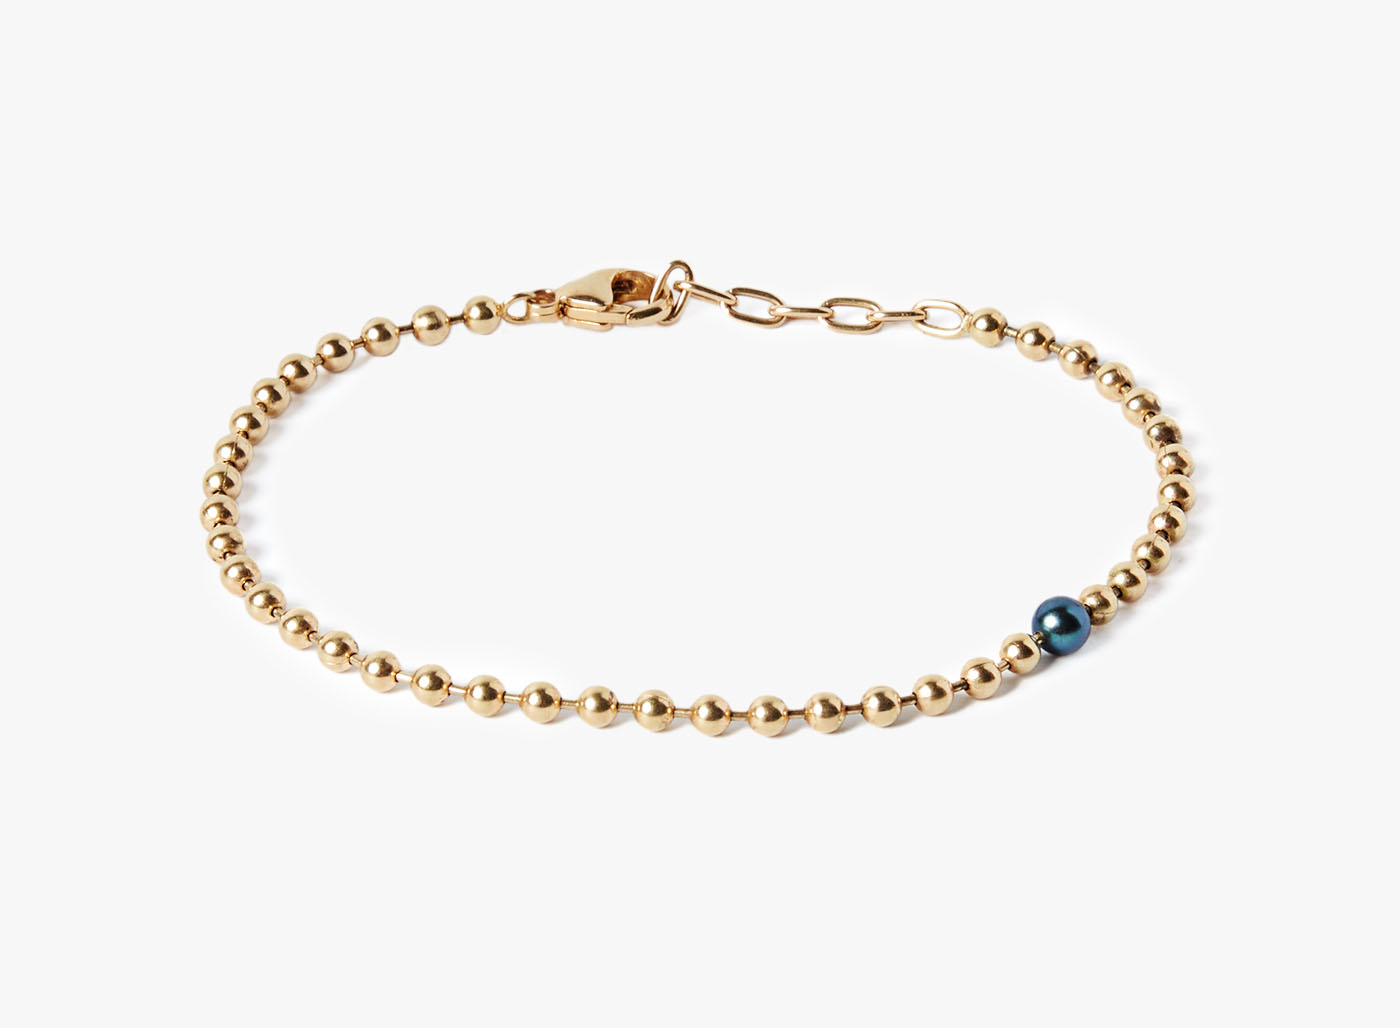 Image of 18k Yellow Gold Chain w/ Single Black Pearl Bracelet